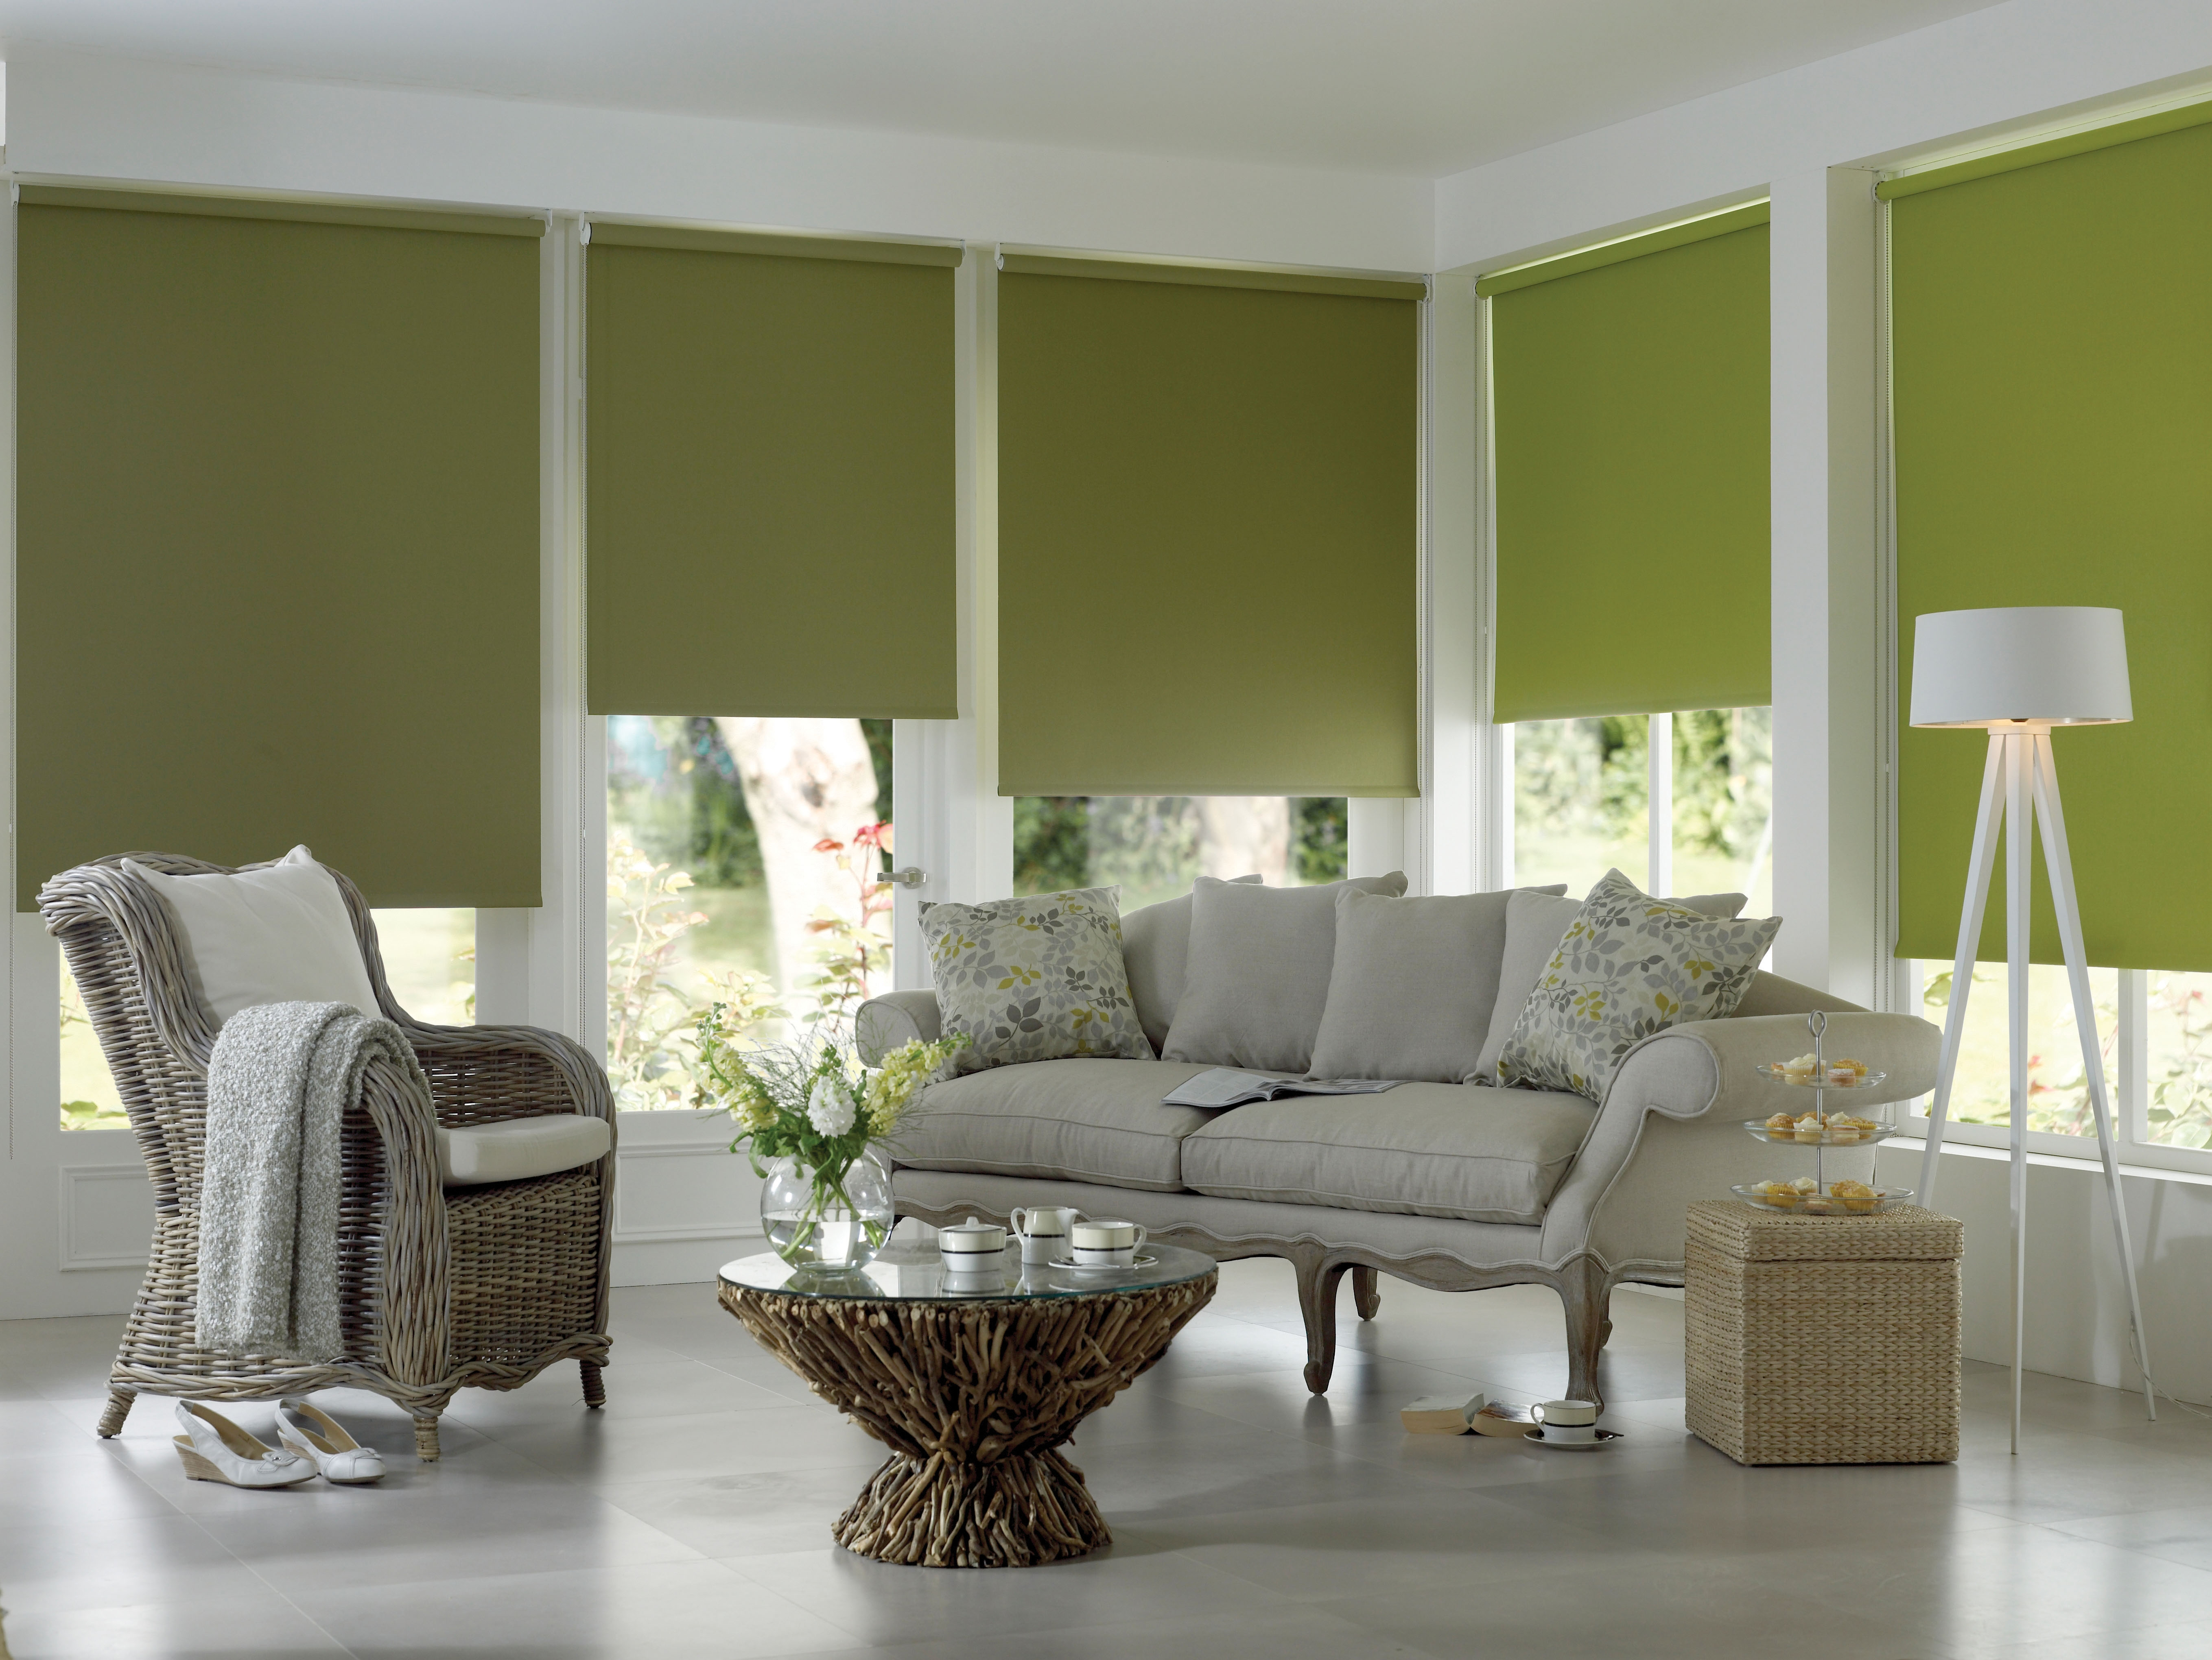 Best 25 Green Roller Blinds Ideas On Pinterest Green Kitchen With Green Roman Blinds (Image 2 of 15)